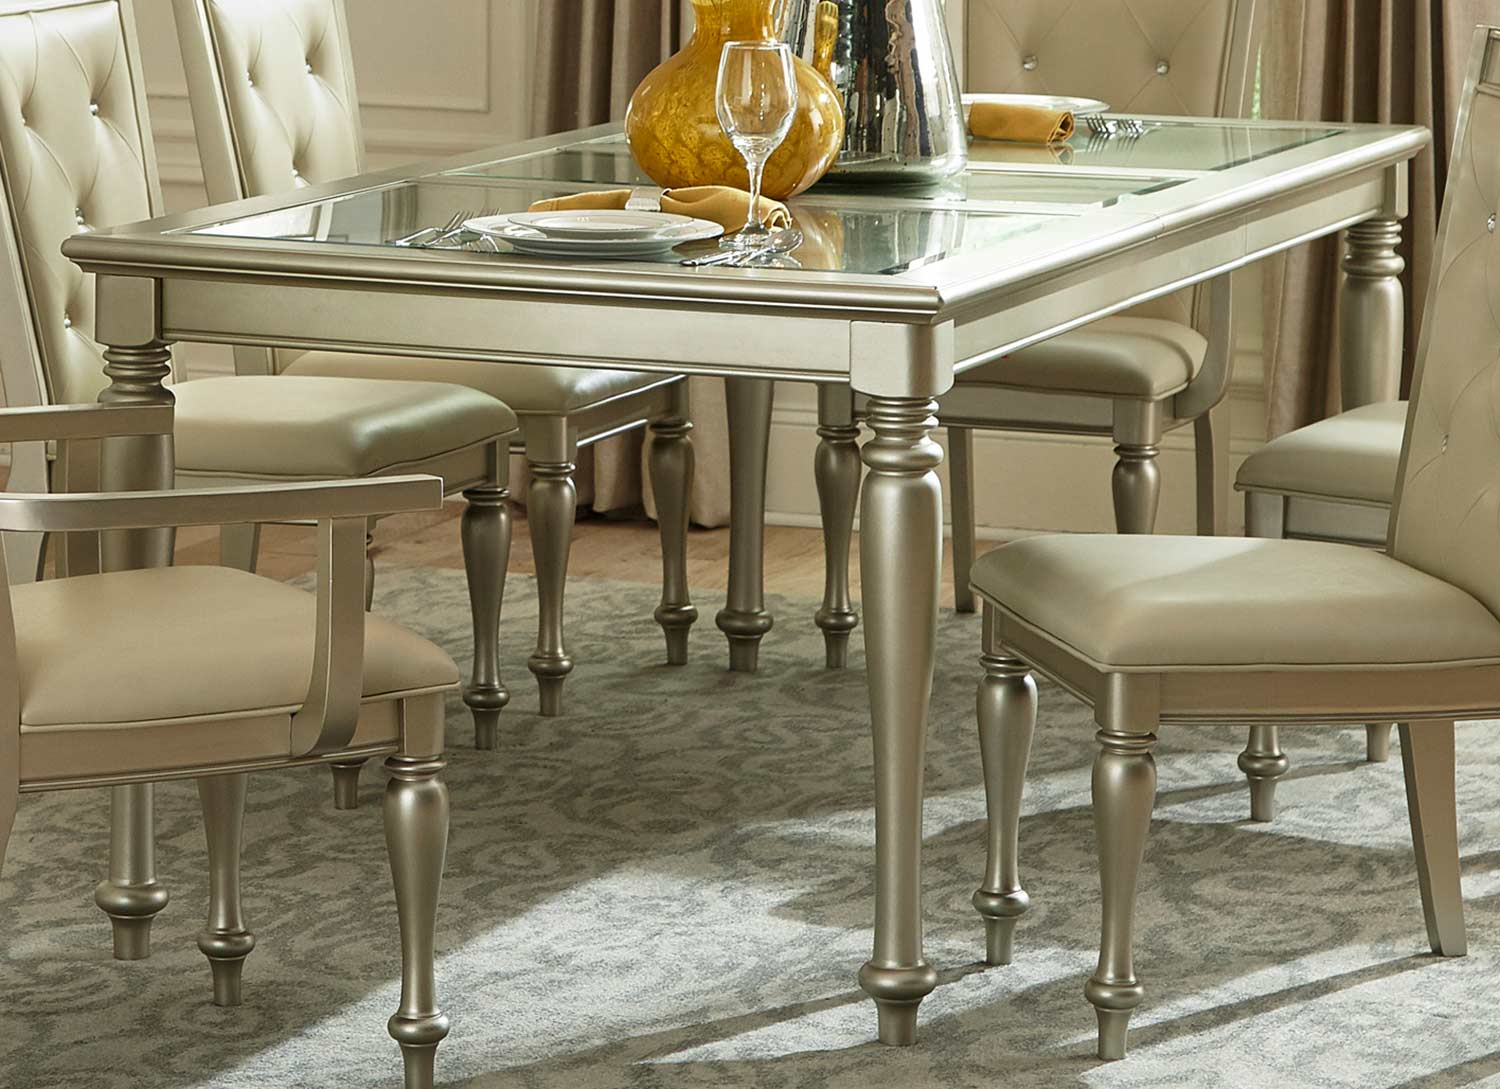 Homelegance Celandine Dining Table - Glass Insert - Silver